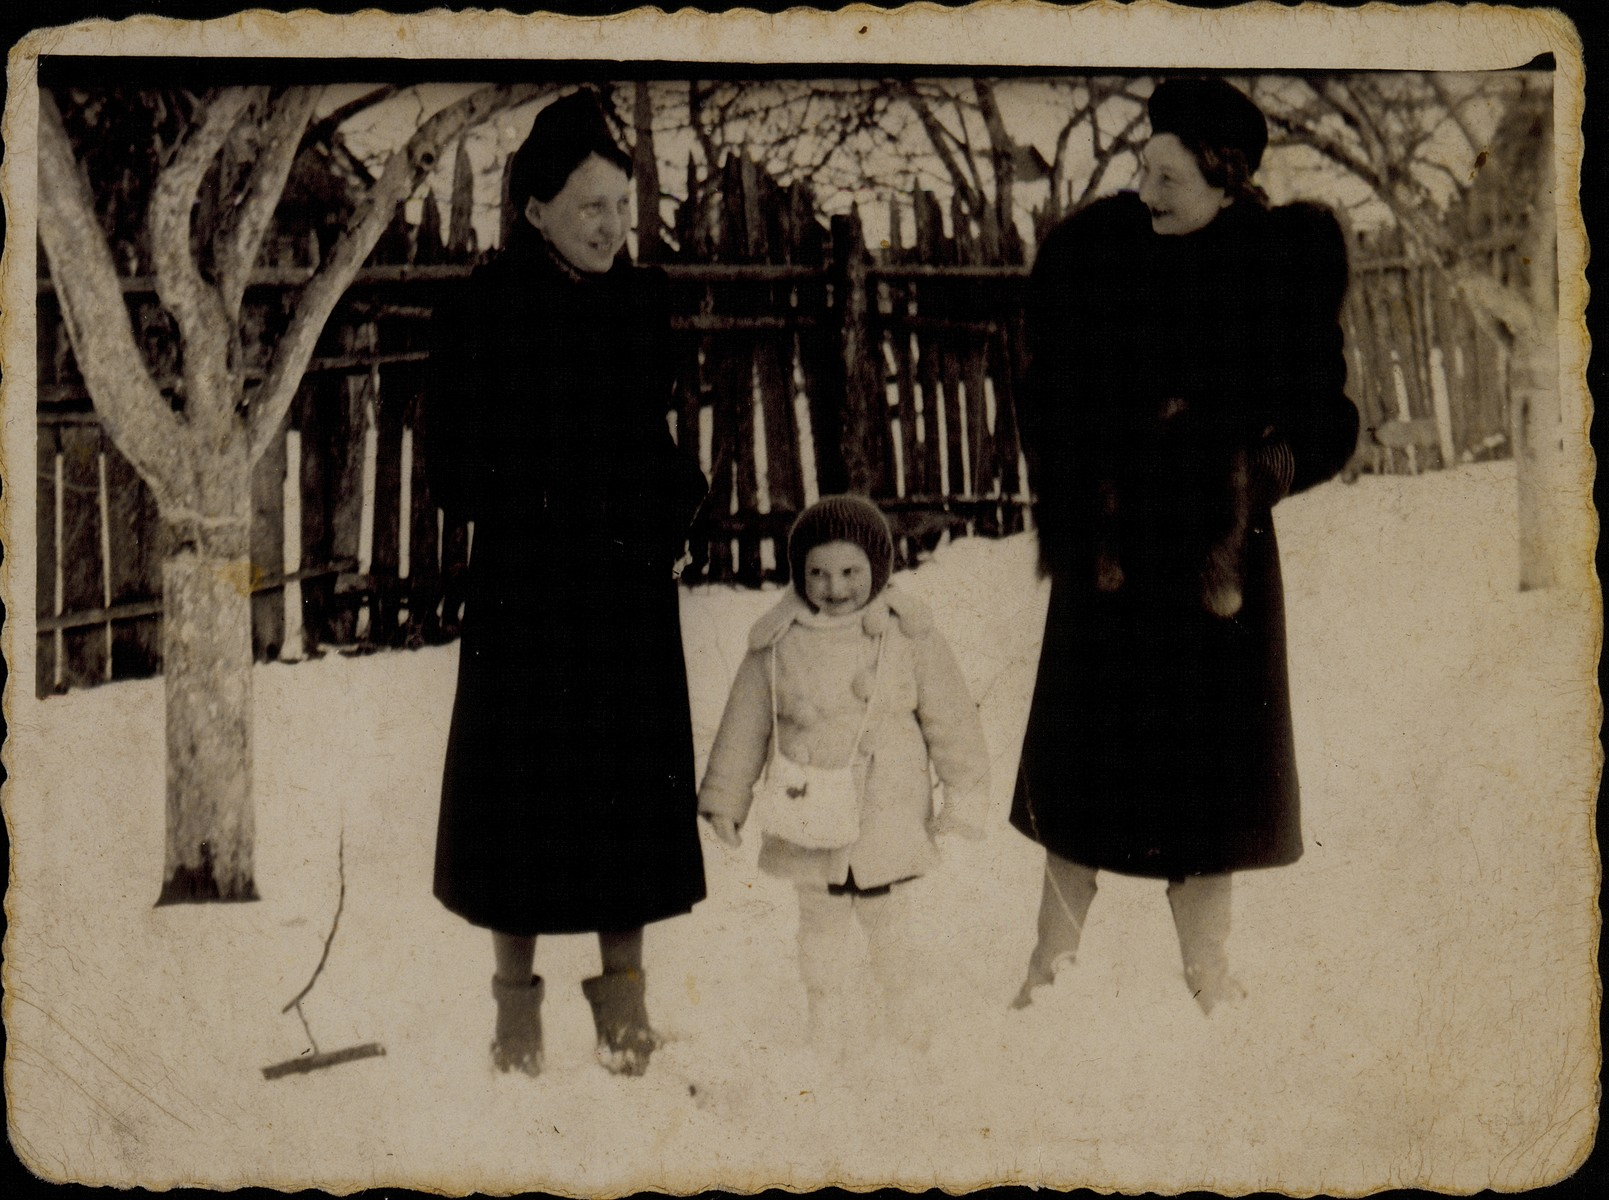 A young Jewish girl poses in the snow between her mother and her aunt.  Pictured are Yaffa Sonenson (center) with her mother, Zipporah (Katz) Sonenson (right) and her aunt, Shoshana Katz (left).